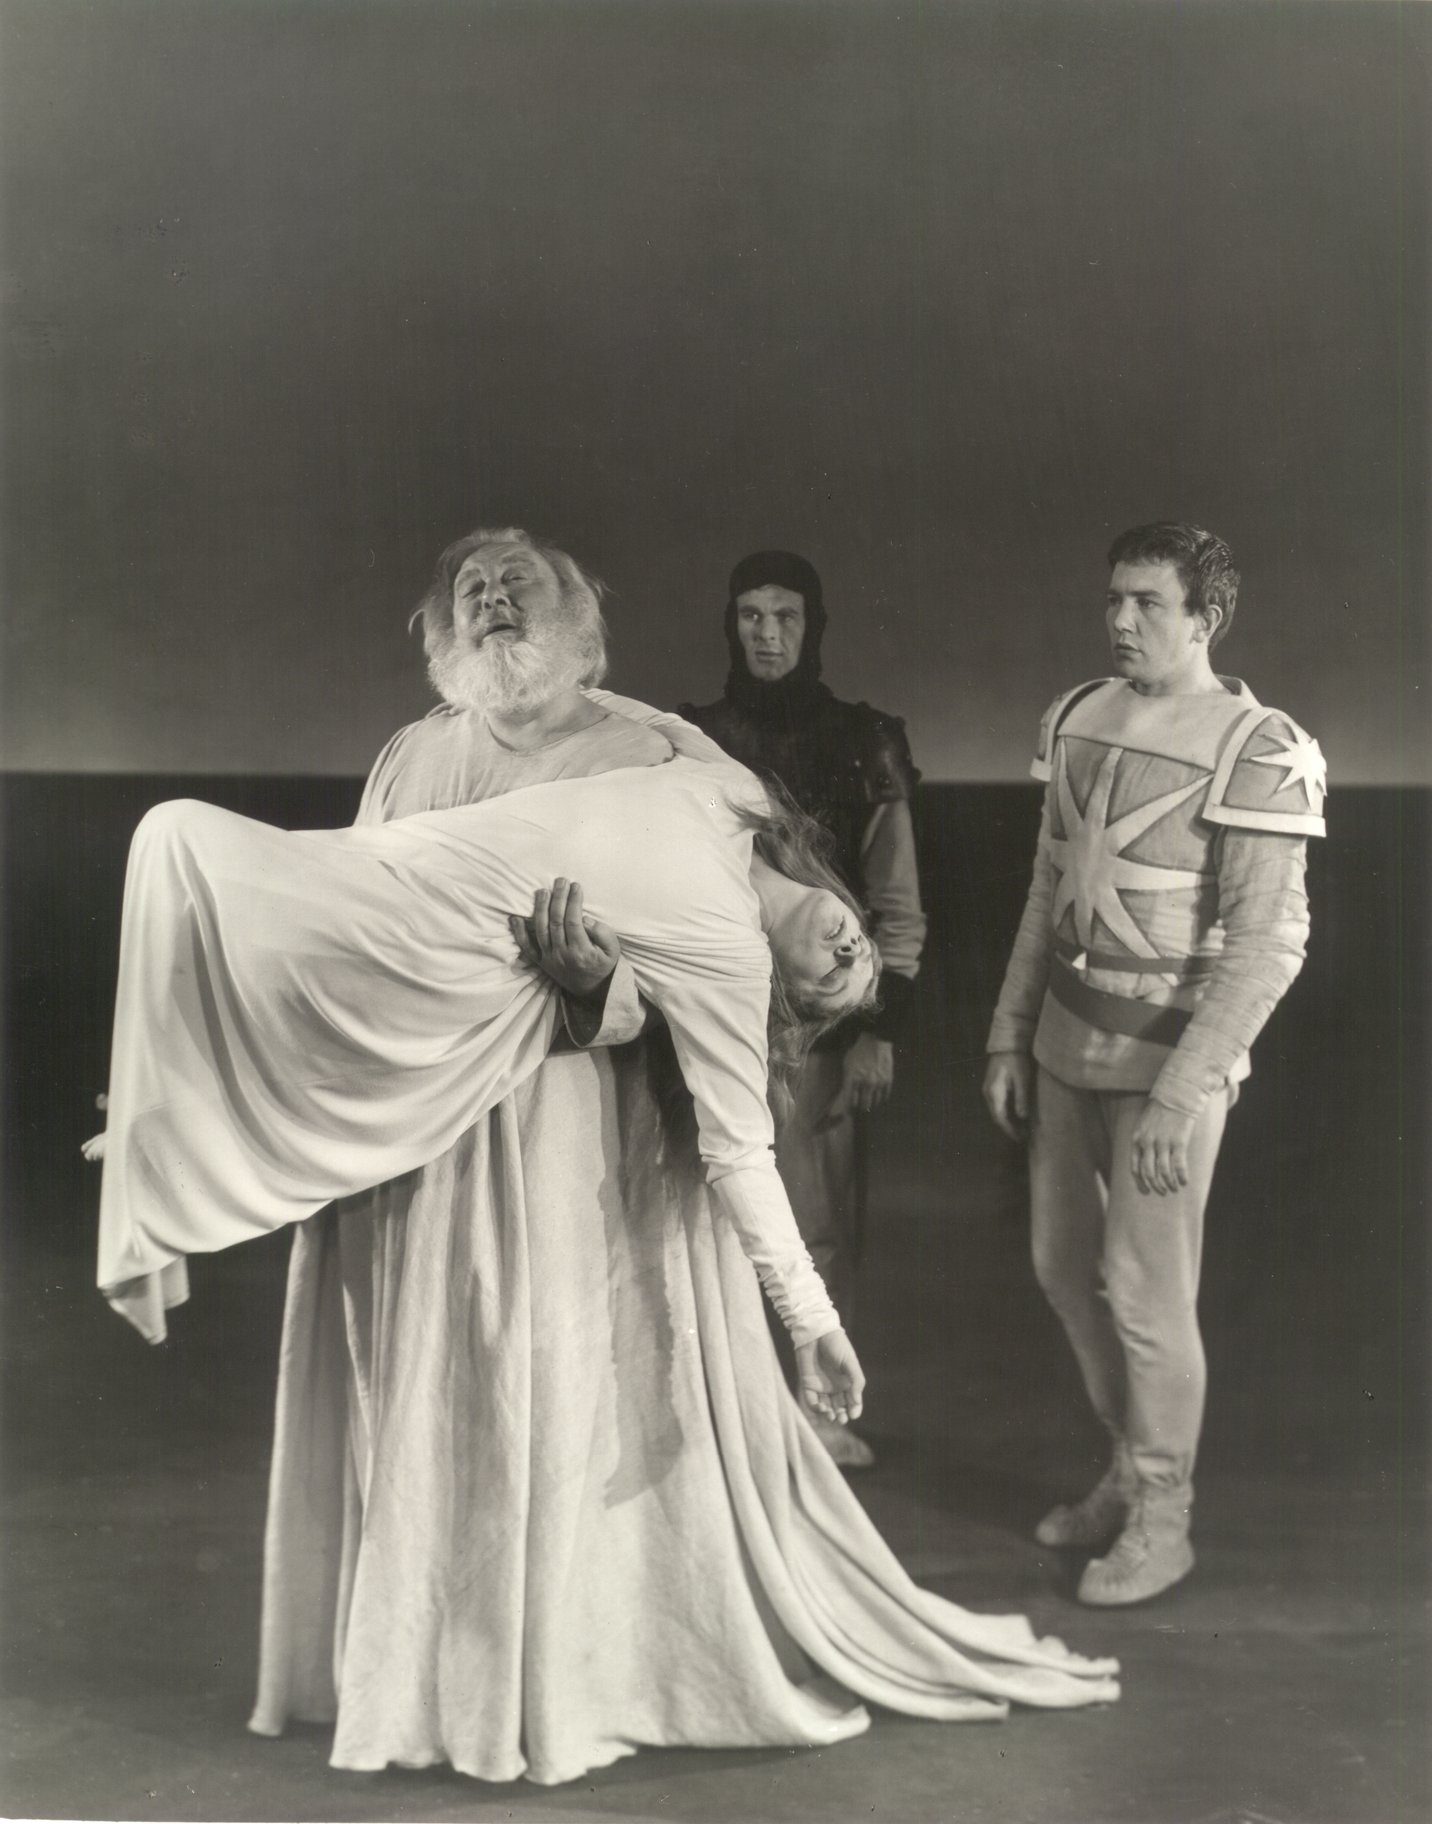 A man in a white robe carries a young woman's body.